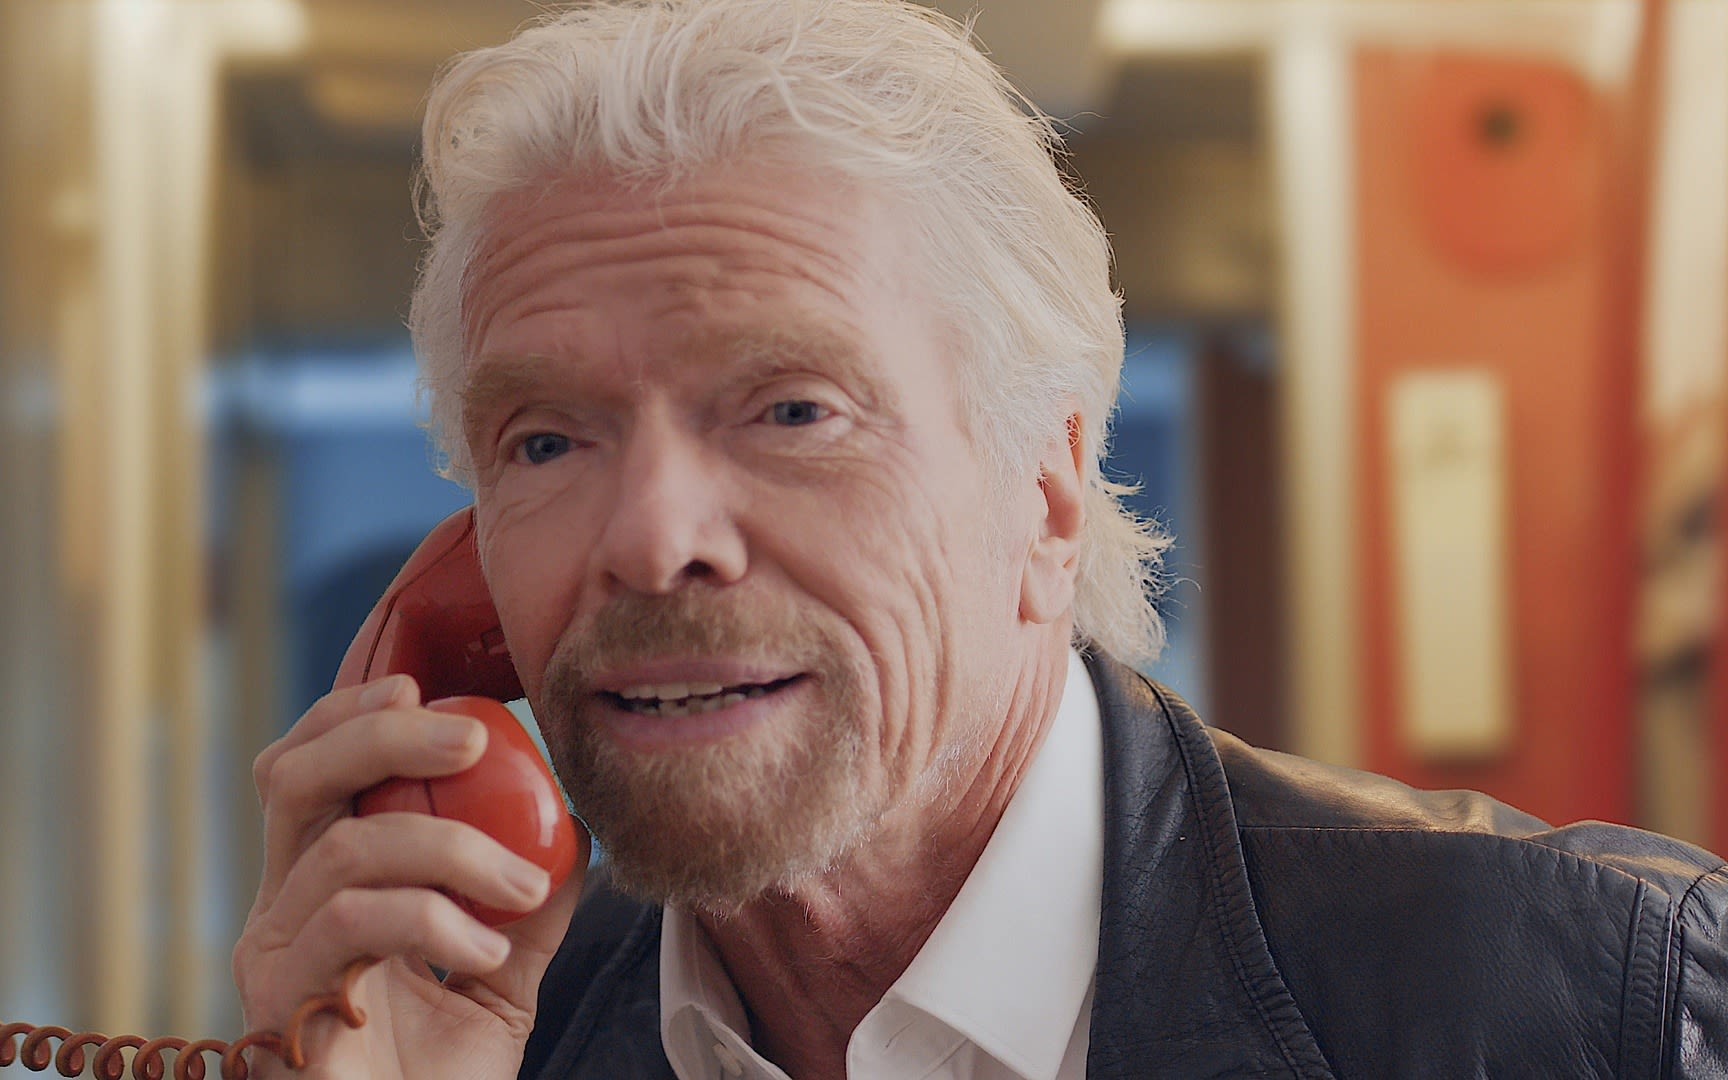 Richard Branson takes a call on a red phone for Virgin Trains